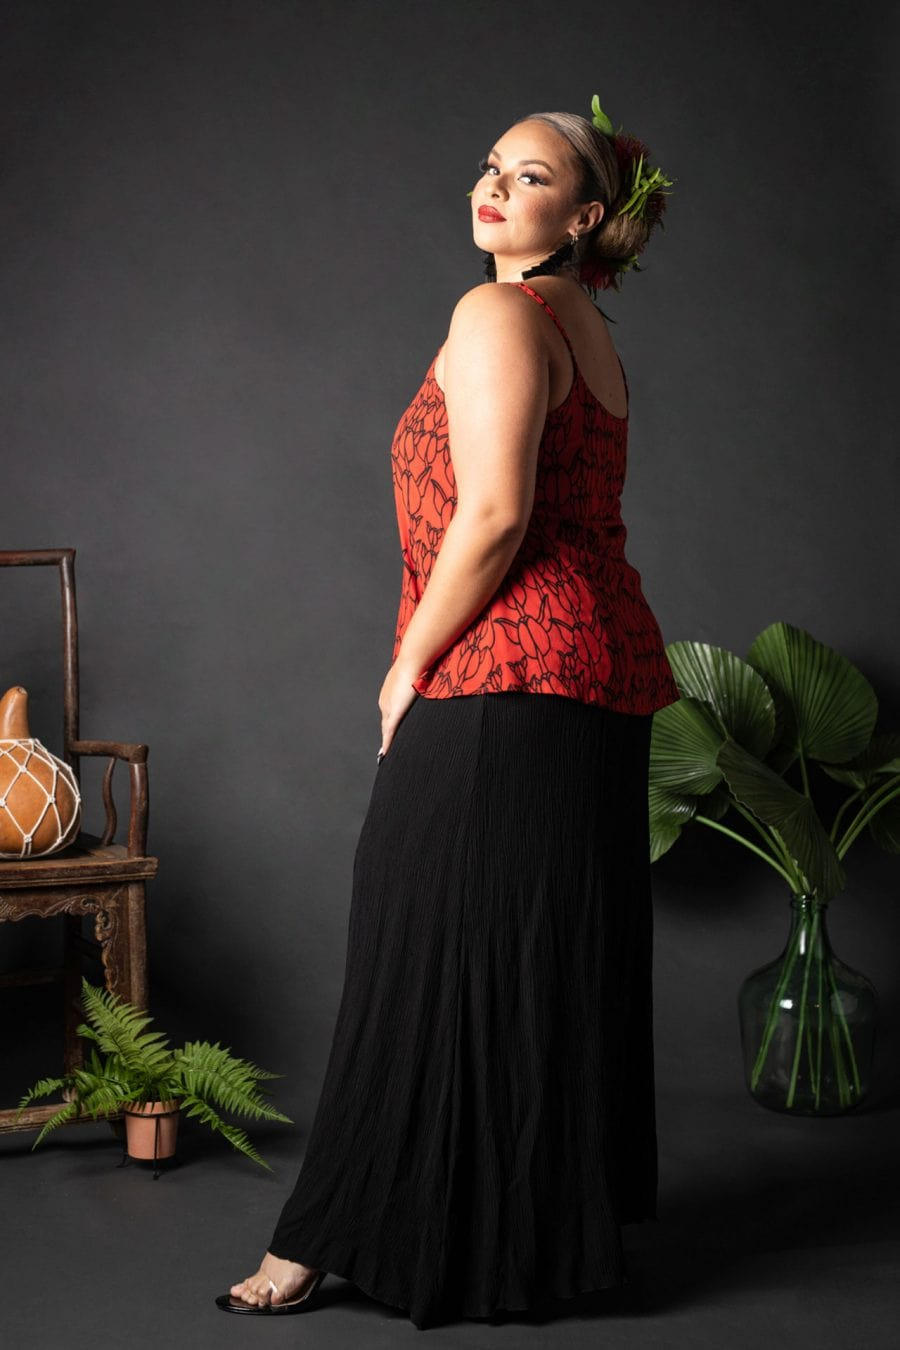 Female model wearing a Manaola Top 6 in a Kapualiko pattern and Fiery Red and Black Color - Side View